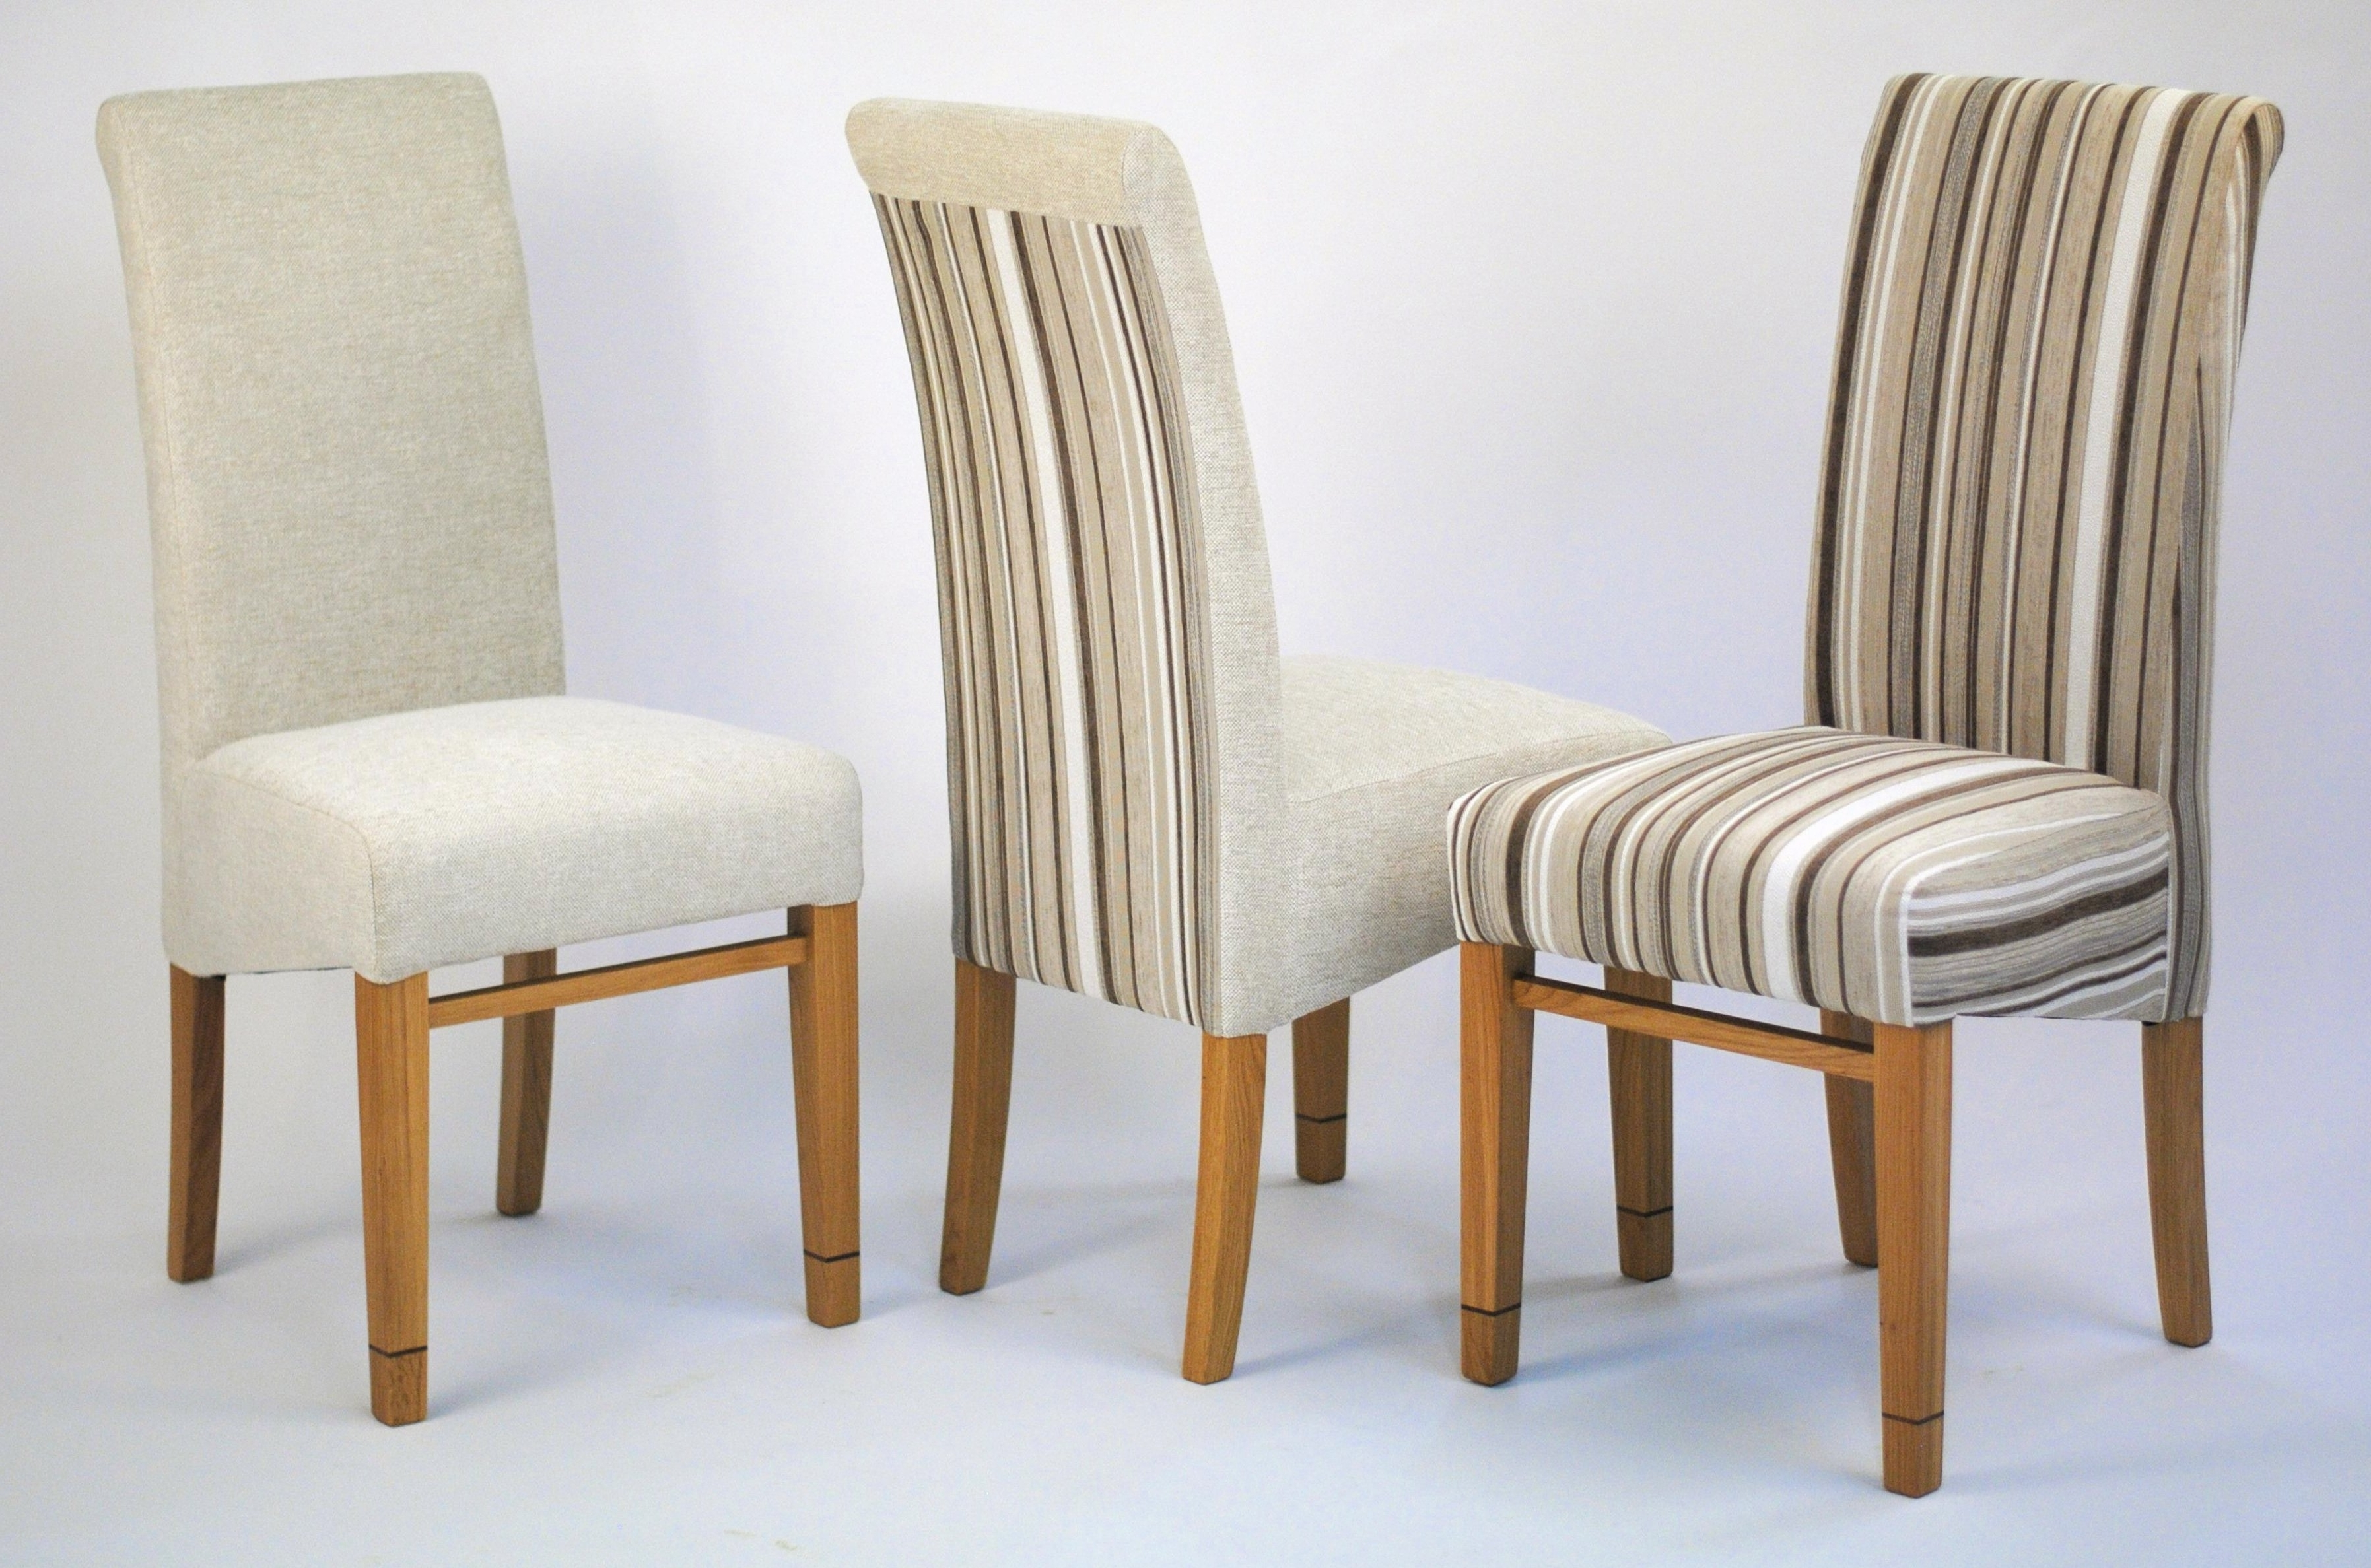 Trendy Upholstered Dining Chair – Tanner Furniture Designs With Fabric Dining Room Chairs (View 7 of 25)